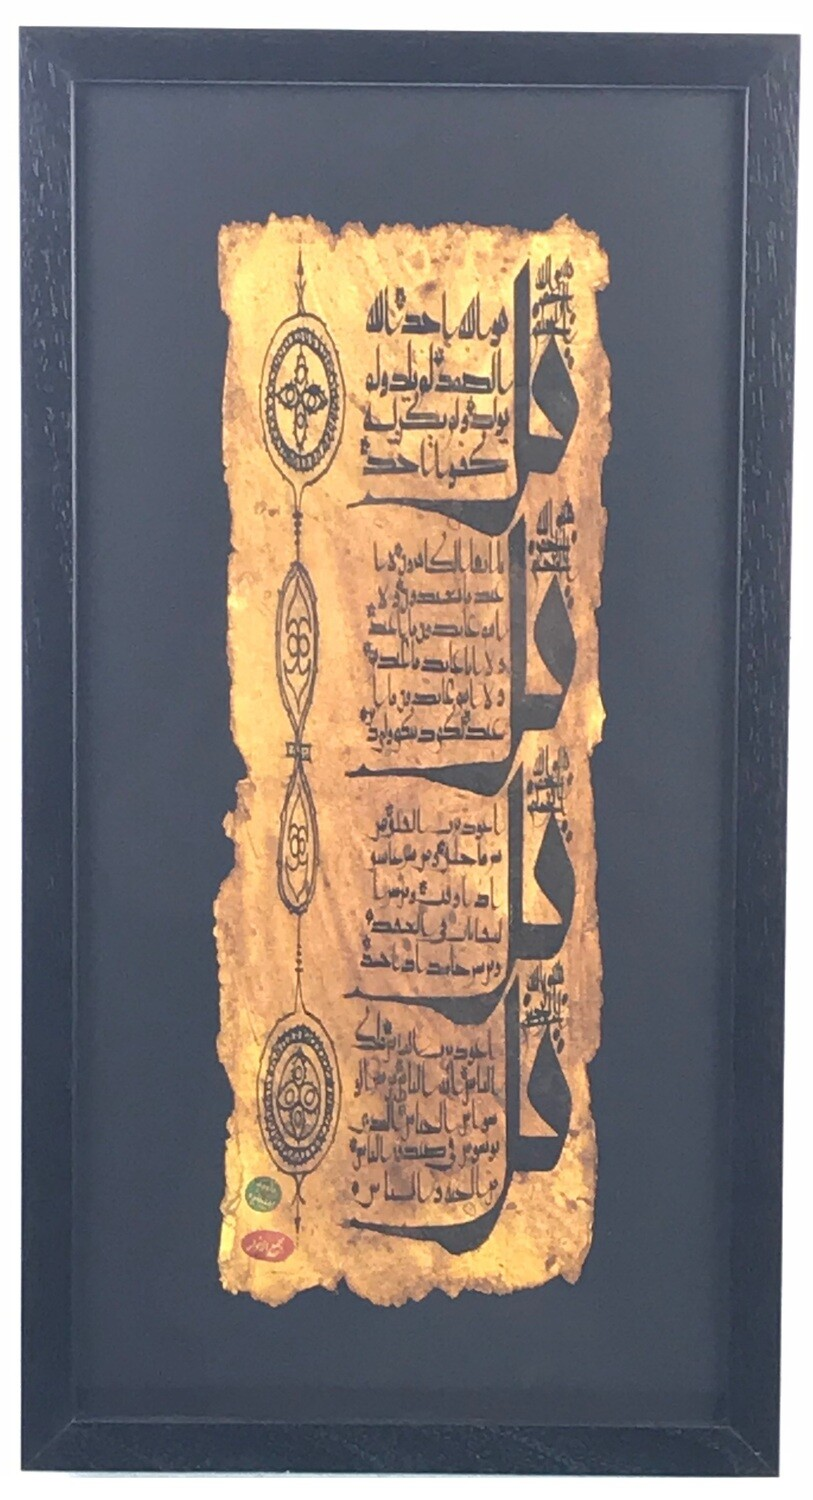 The Four Quls Antiqued Manuscript in Black 3D Memory Box Frame